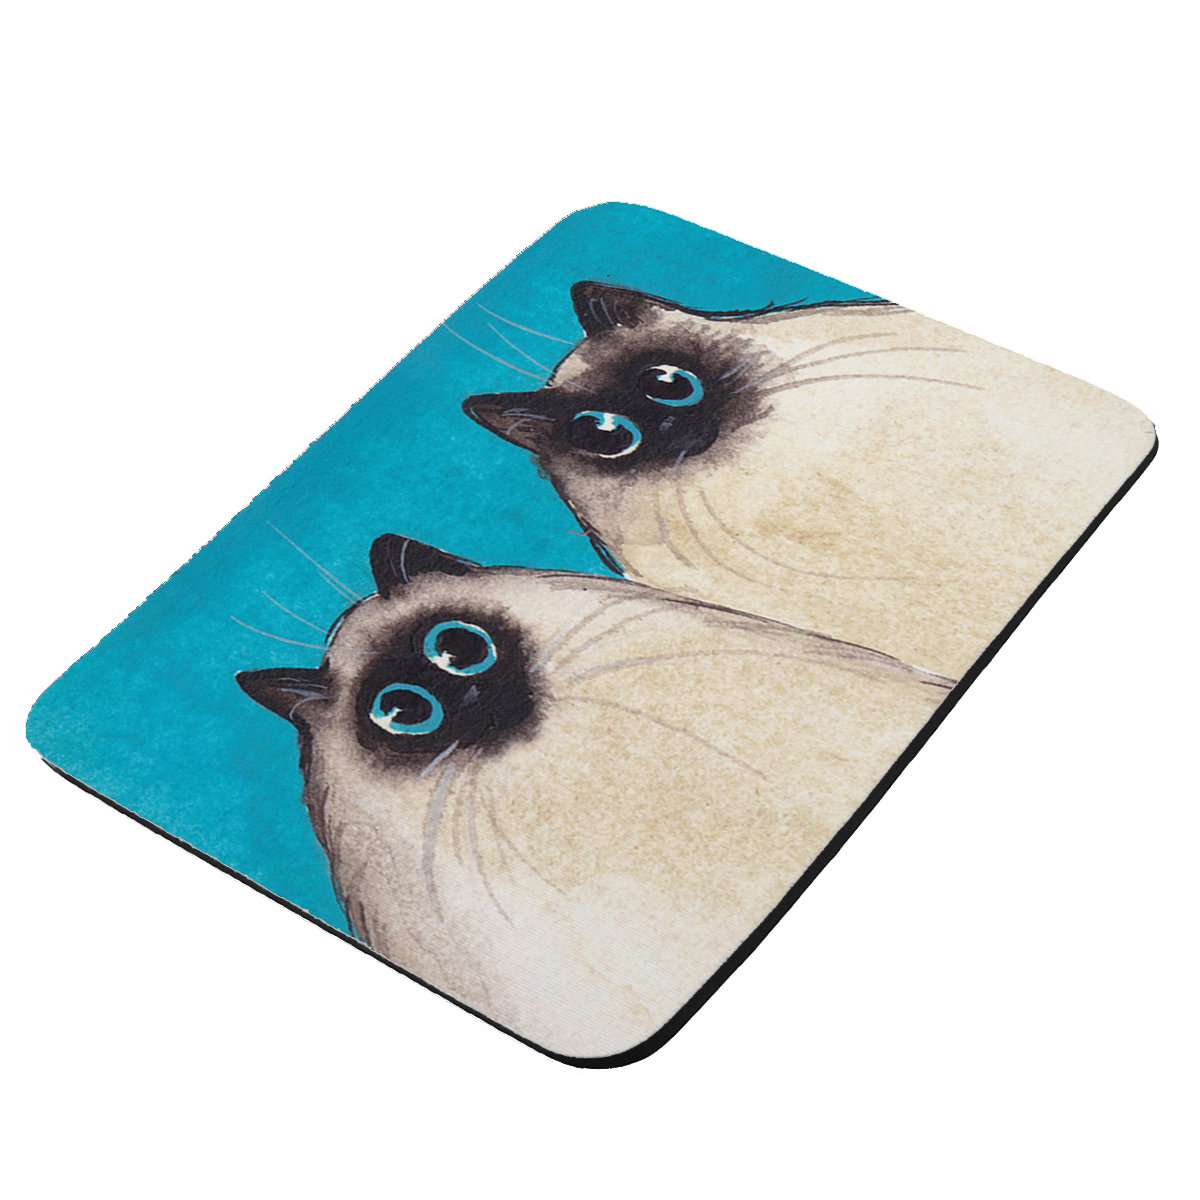 Silly Himalayan Kitties Abstract Cat Art by Denise Every - KuzmarK Mousepad / Hot Pad / Trivet